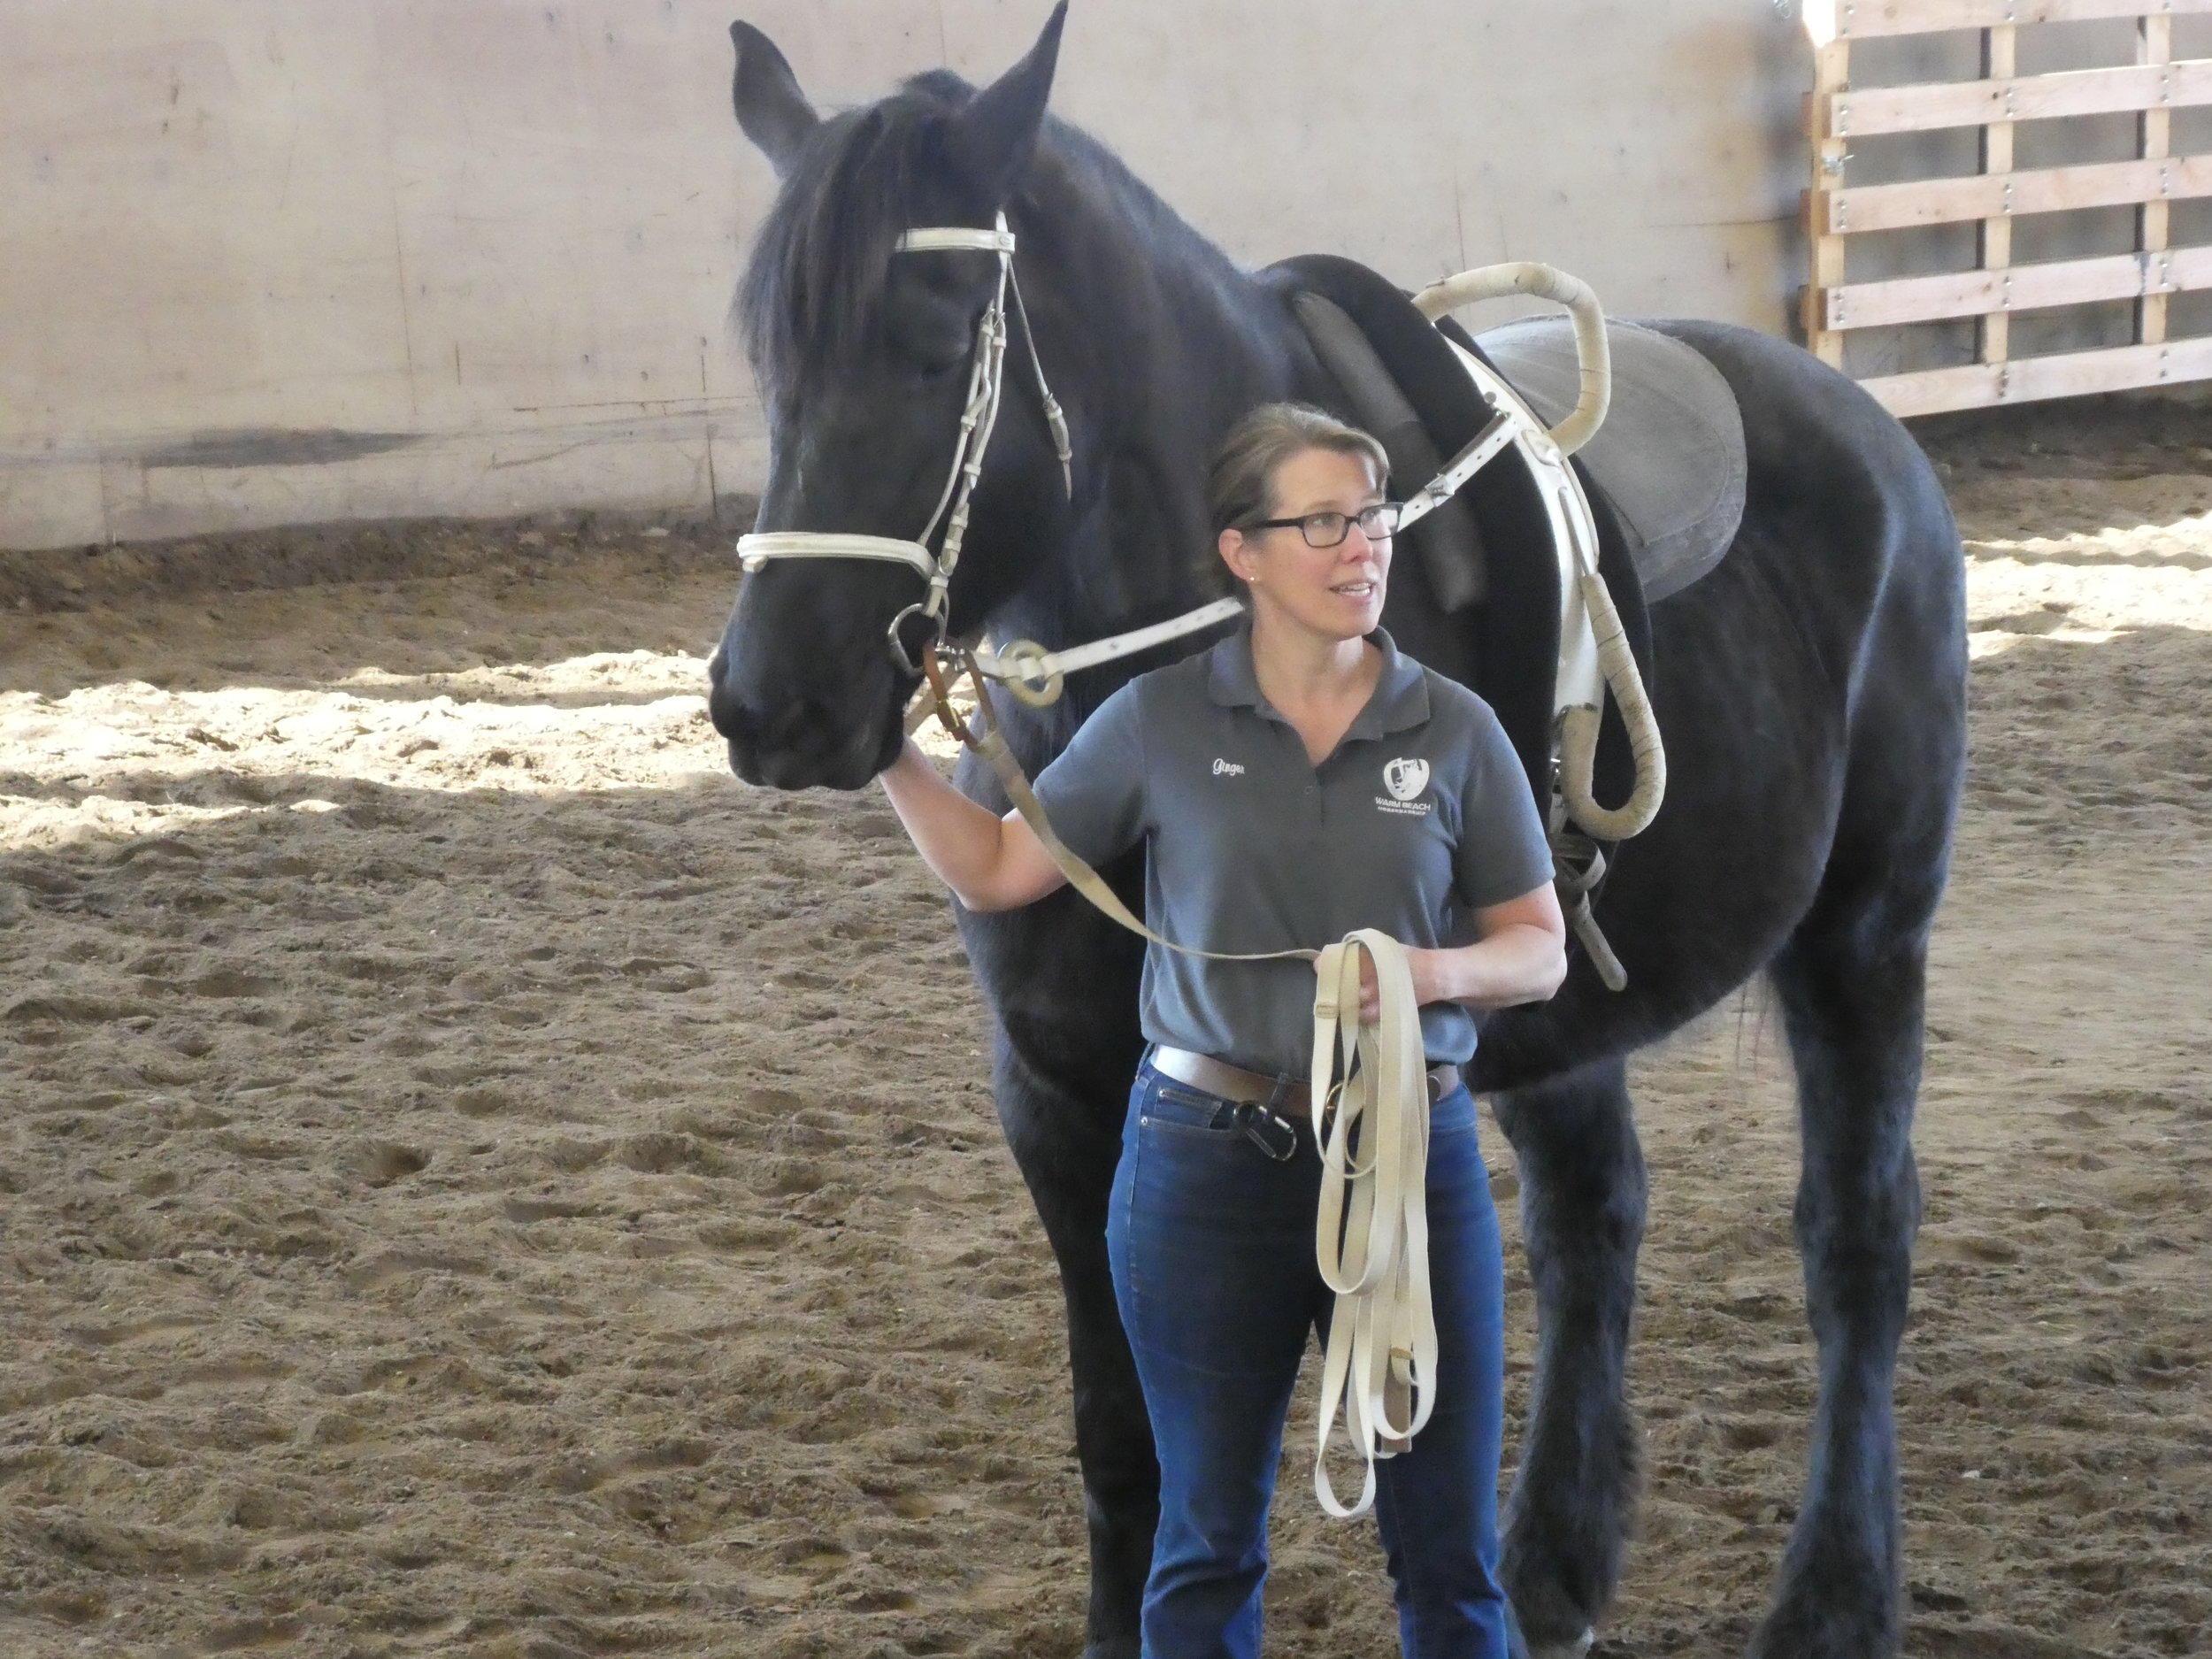 Ginger Reitz, Therapeutic Horsemanship Coordinator, with Freya in the vaulting surcingle.